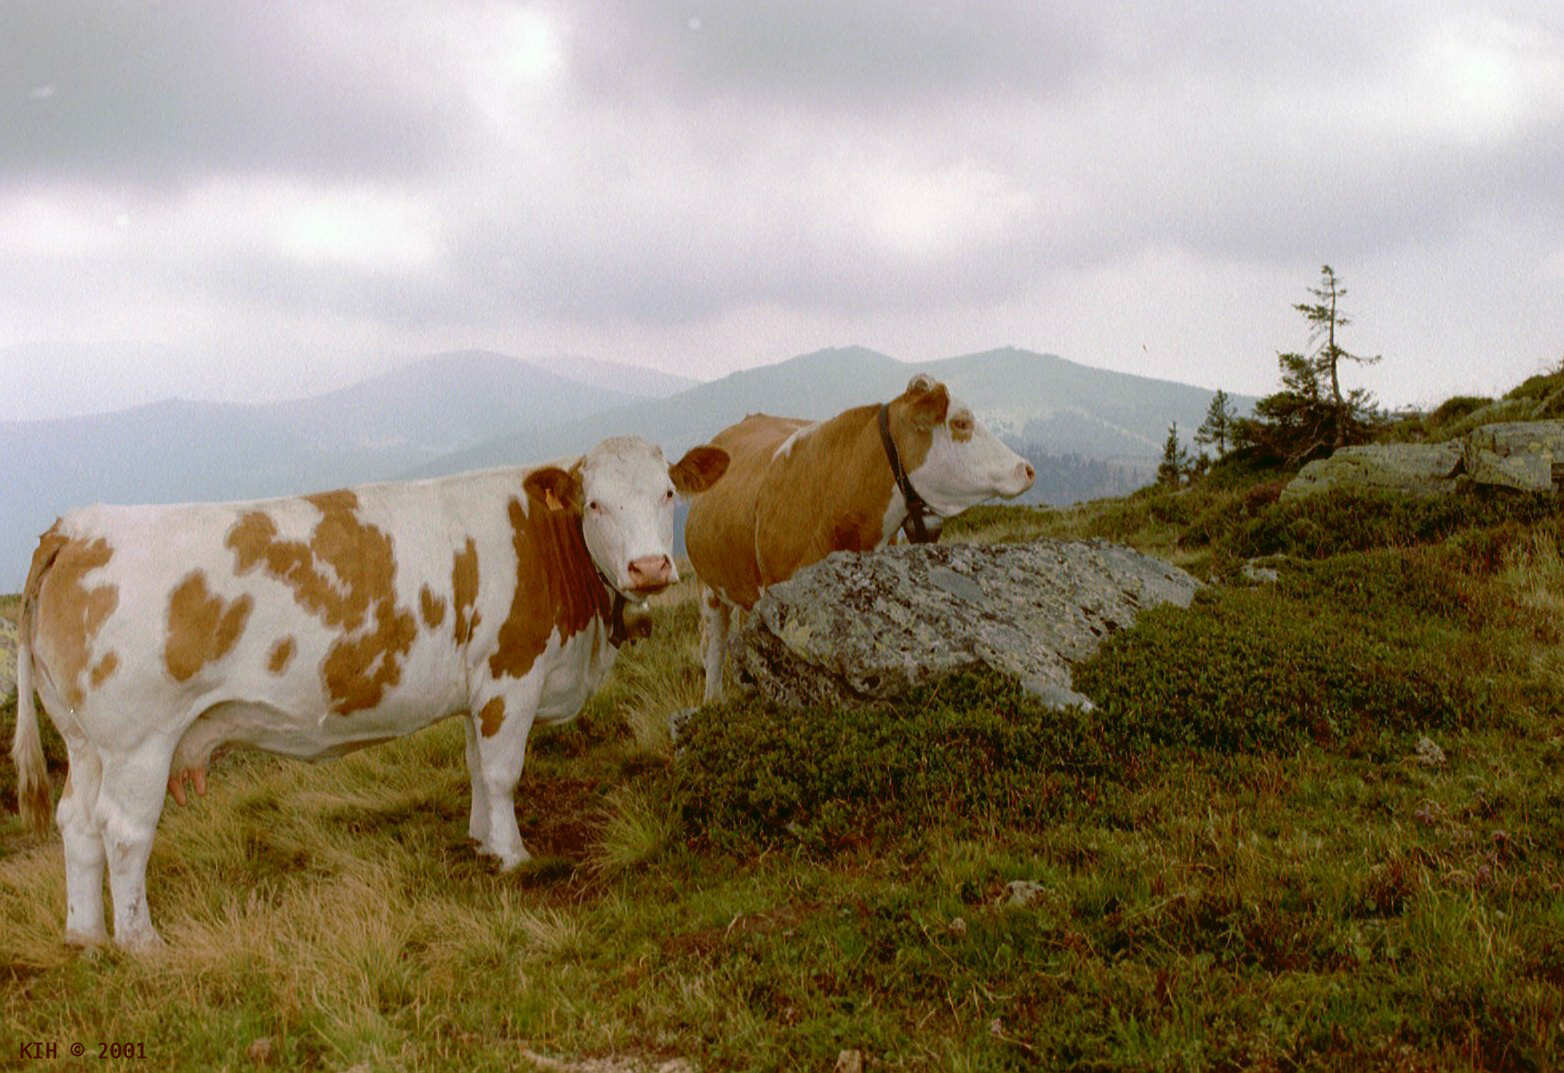 Two Cows on Hill [AT 2001]   KIH